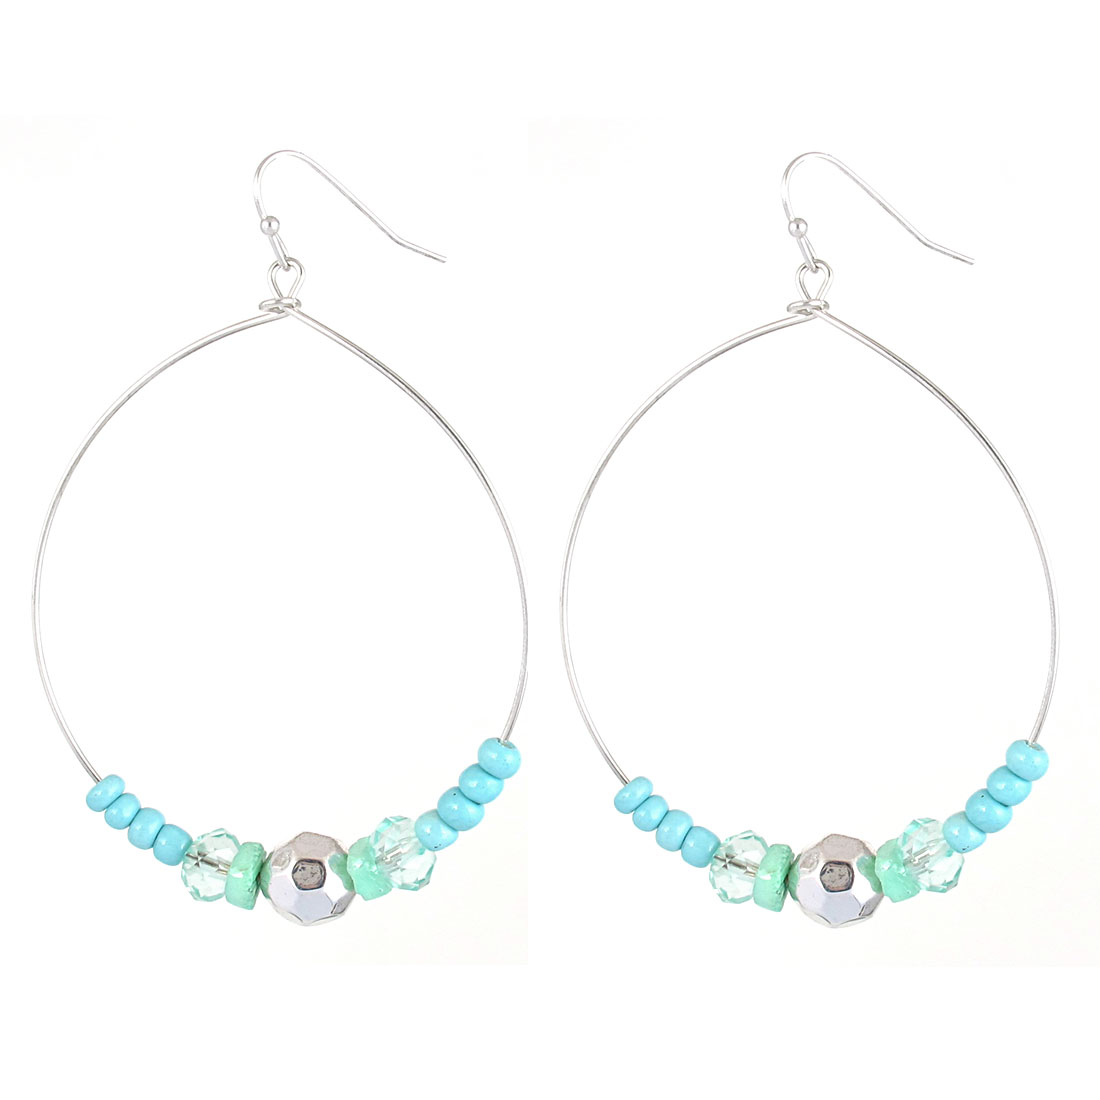 "2.2"" Dia Silver Tone Light Blue Green Plastic Slip Beads Metal Hook Earrings Pair for Lady Women"